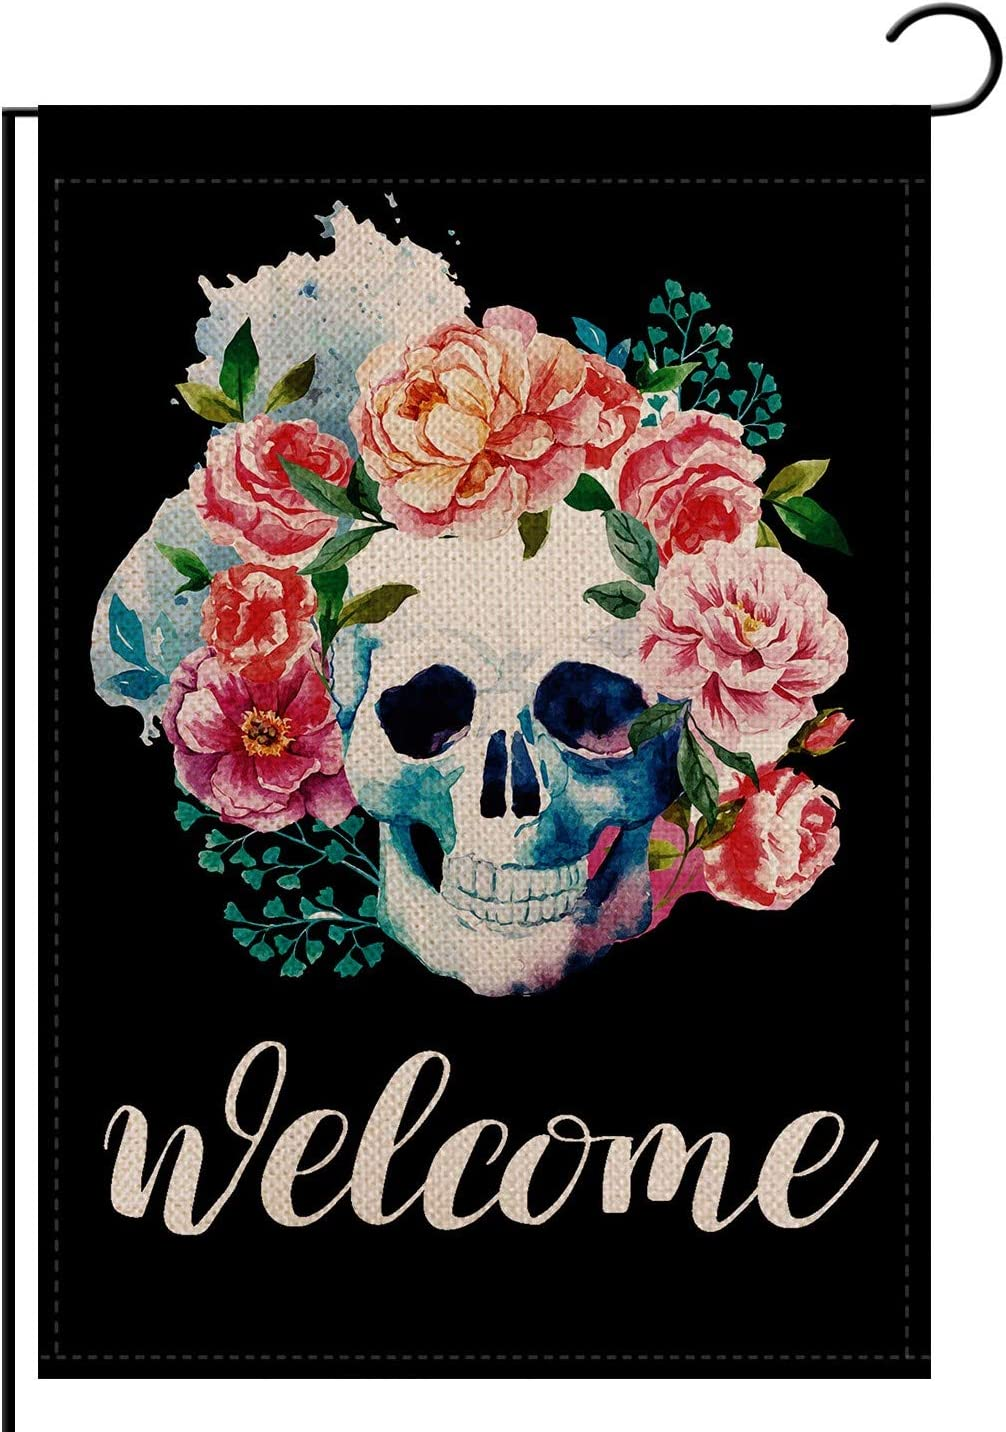 REUTGN Skulls Red Roes Flowers Summer Spring Welcome Garden Flag Double Sided, Welcome Seasonal Burlap House Flags, Yard Signs Farm Home Outdoor Decor 12.5 x 18 Inch